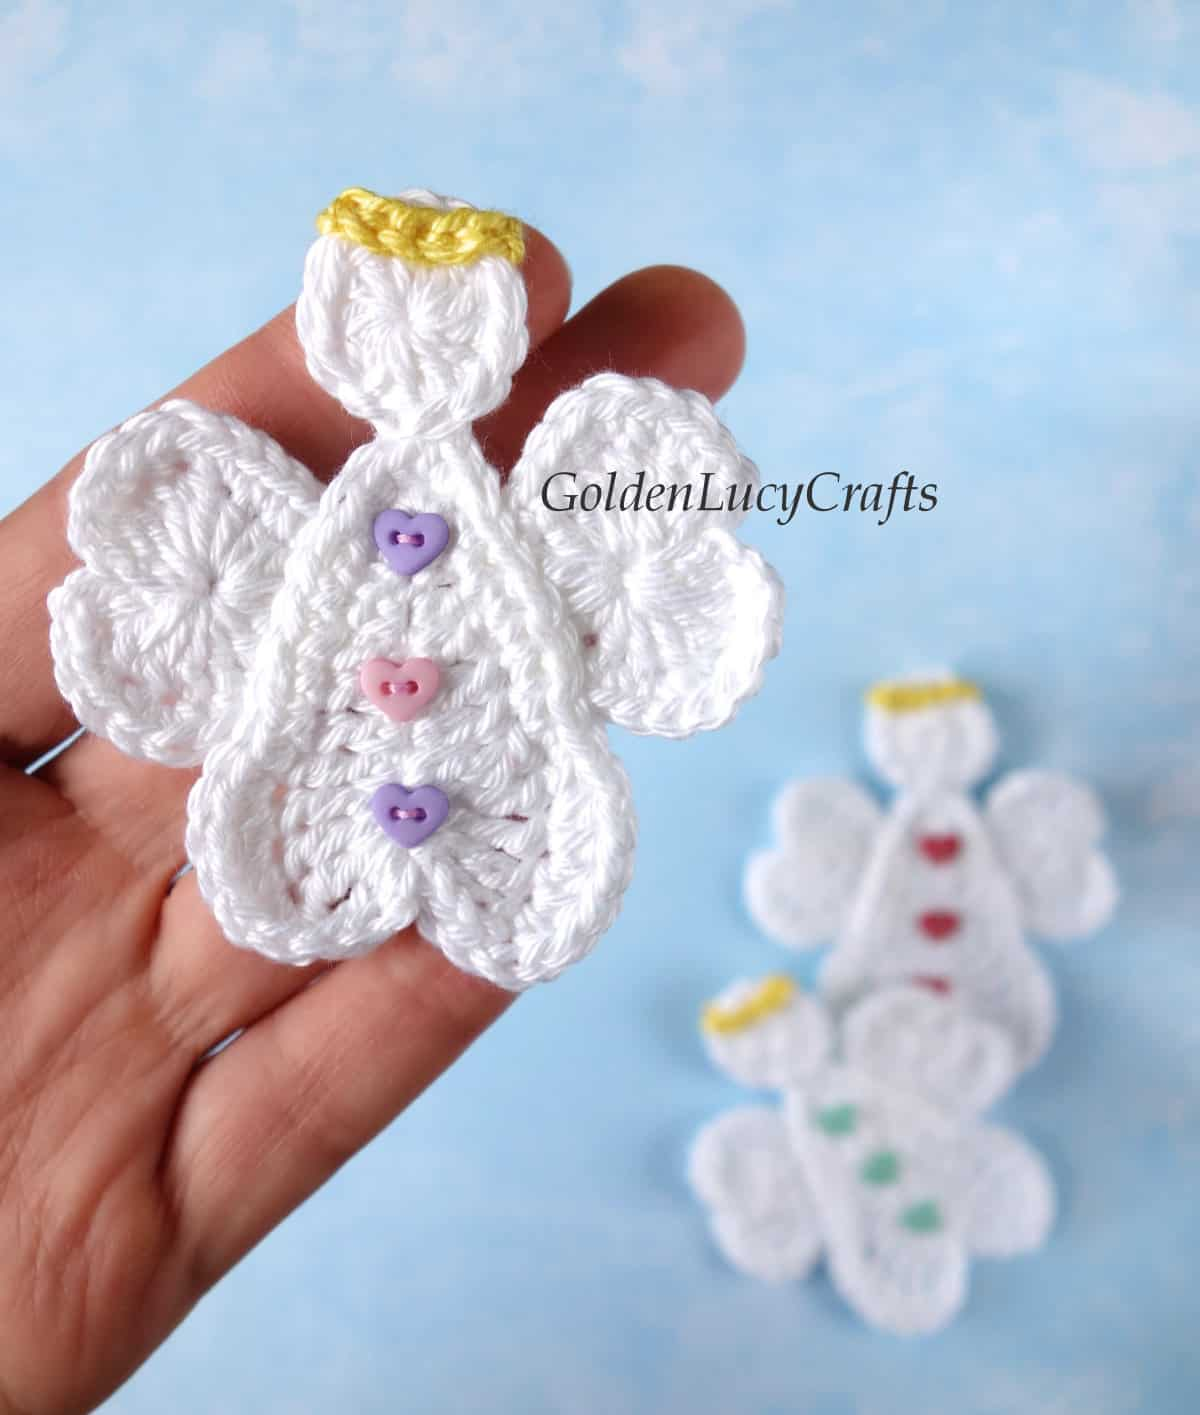 Crochet heart angel applique in the palm of a hand